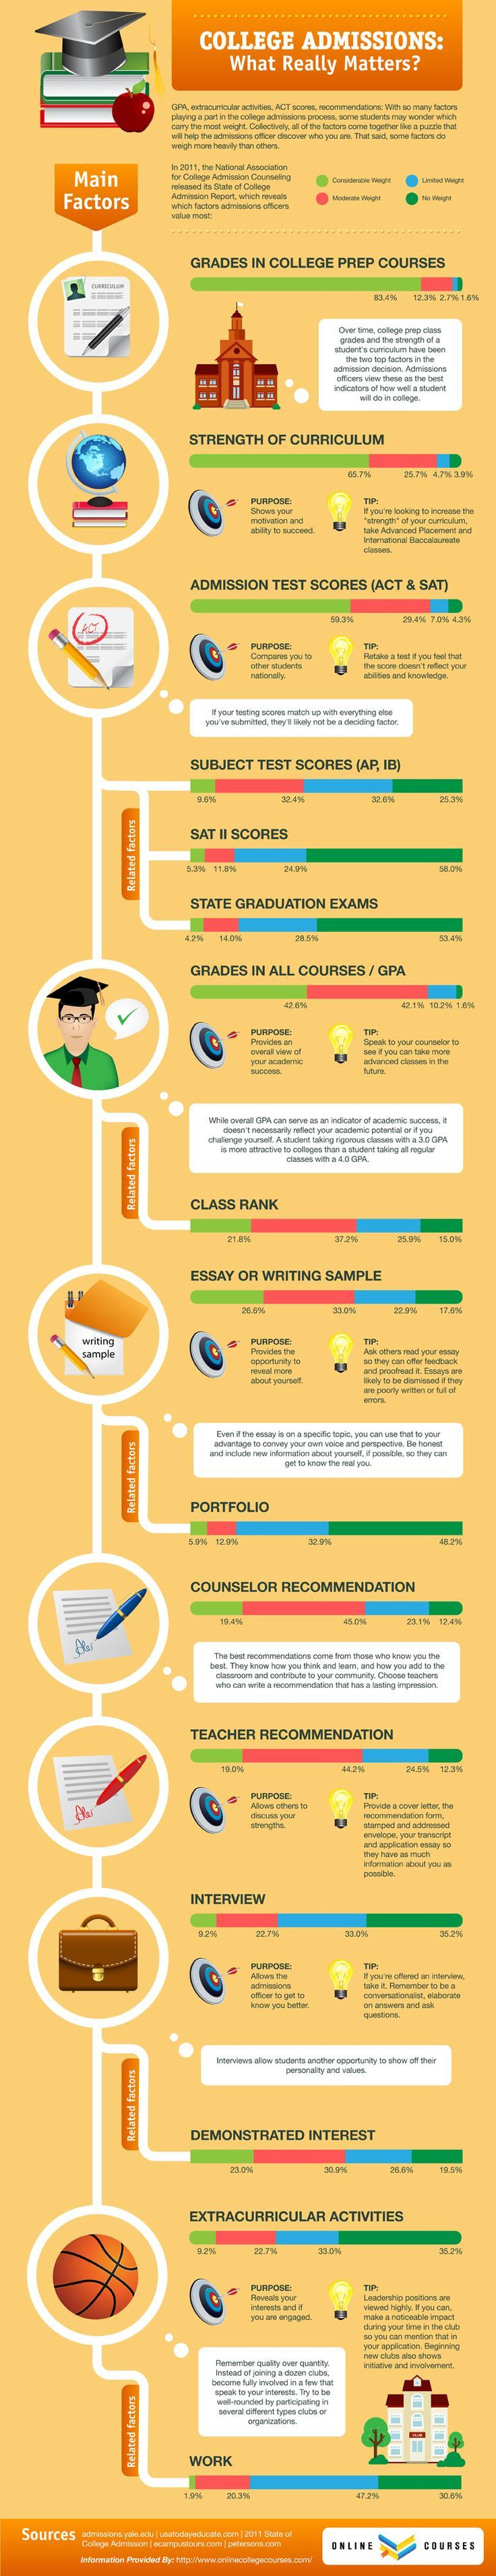 17 best ideas about essay structure essay writing 30 good student class president slogans